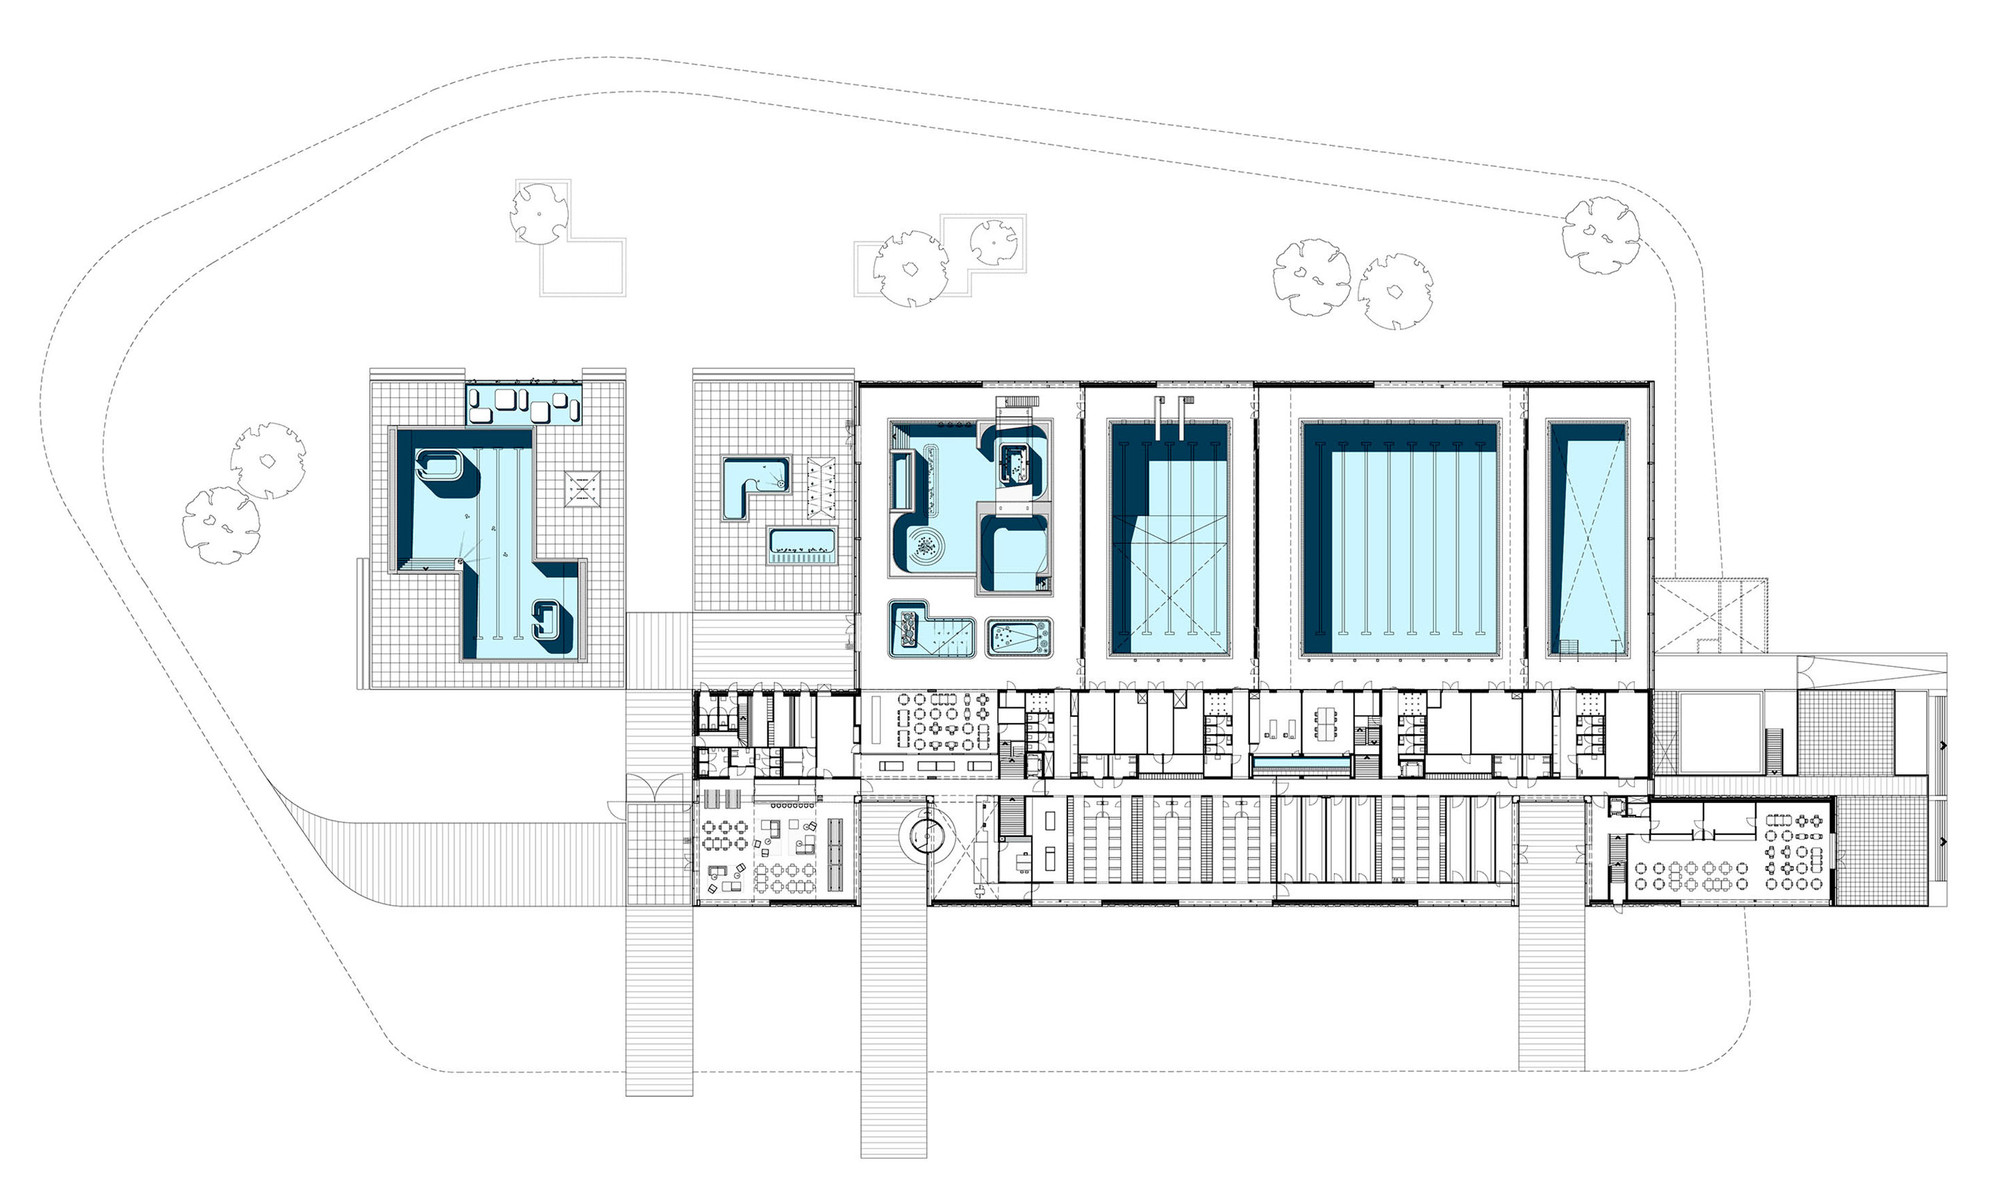 Multifunctional swimming pool complex de geusselt for Swimming pool plans online